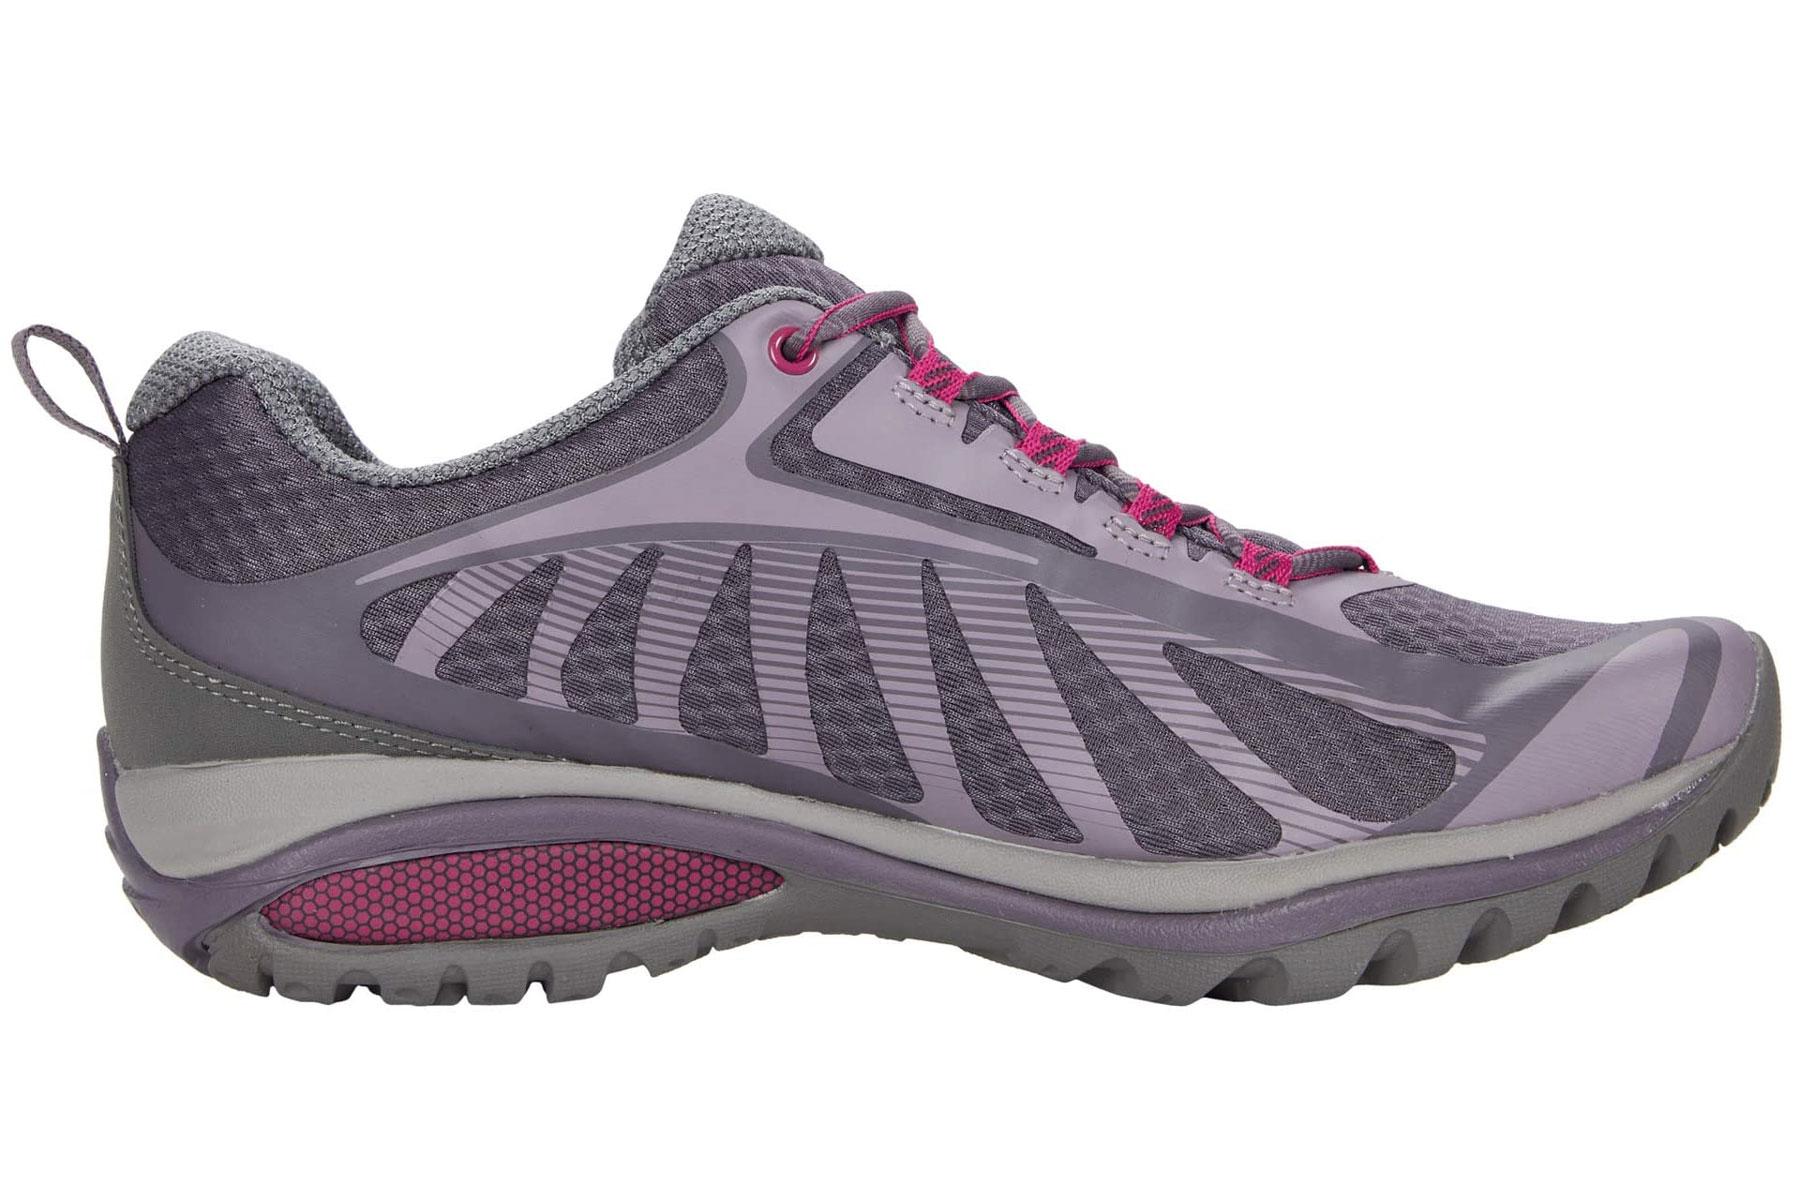 Pink and purple hiking shoes